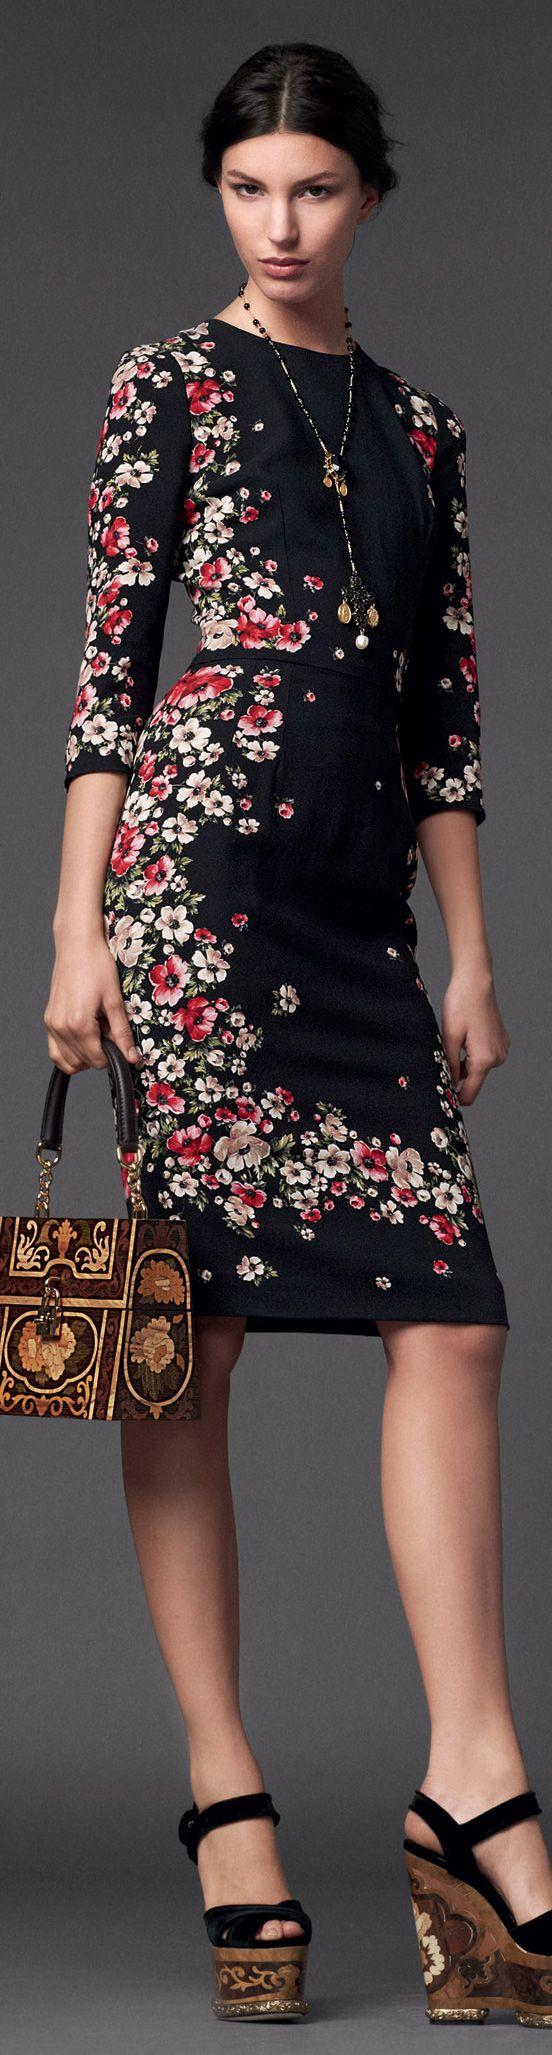 Dolce & Gabbana | Woman Collection W 2014  | The House of Beccaria Beautifuls.com Members VIP Fashion Club 40-80% Off Luxury Fashion Brands